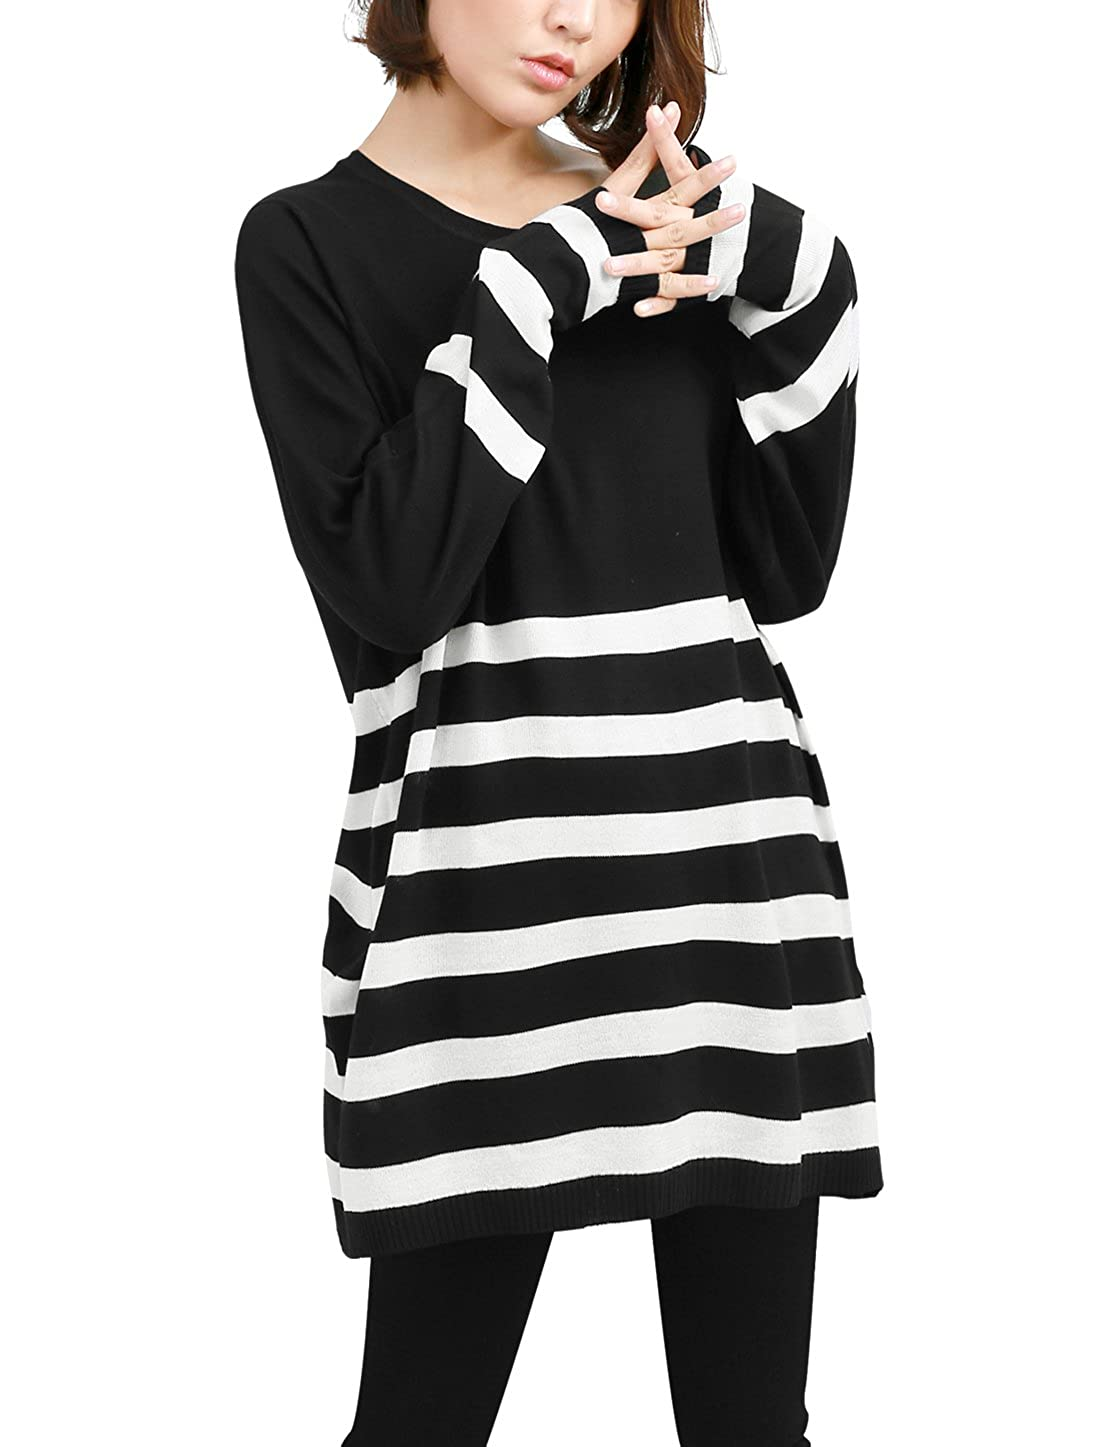 Allegra K Women's Round Neck Stripes Color Block Boyfriend Loose Tunic Knit Top a15010200ux0462